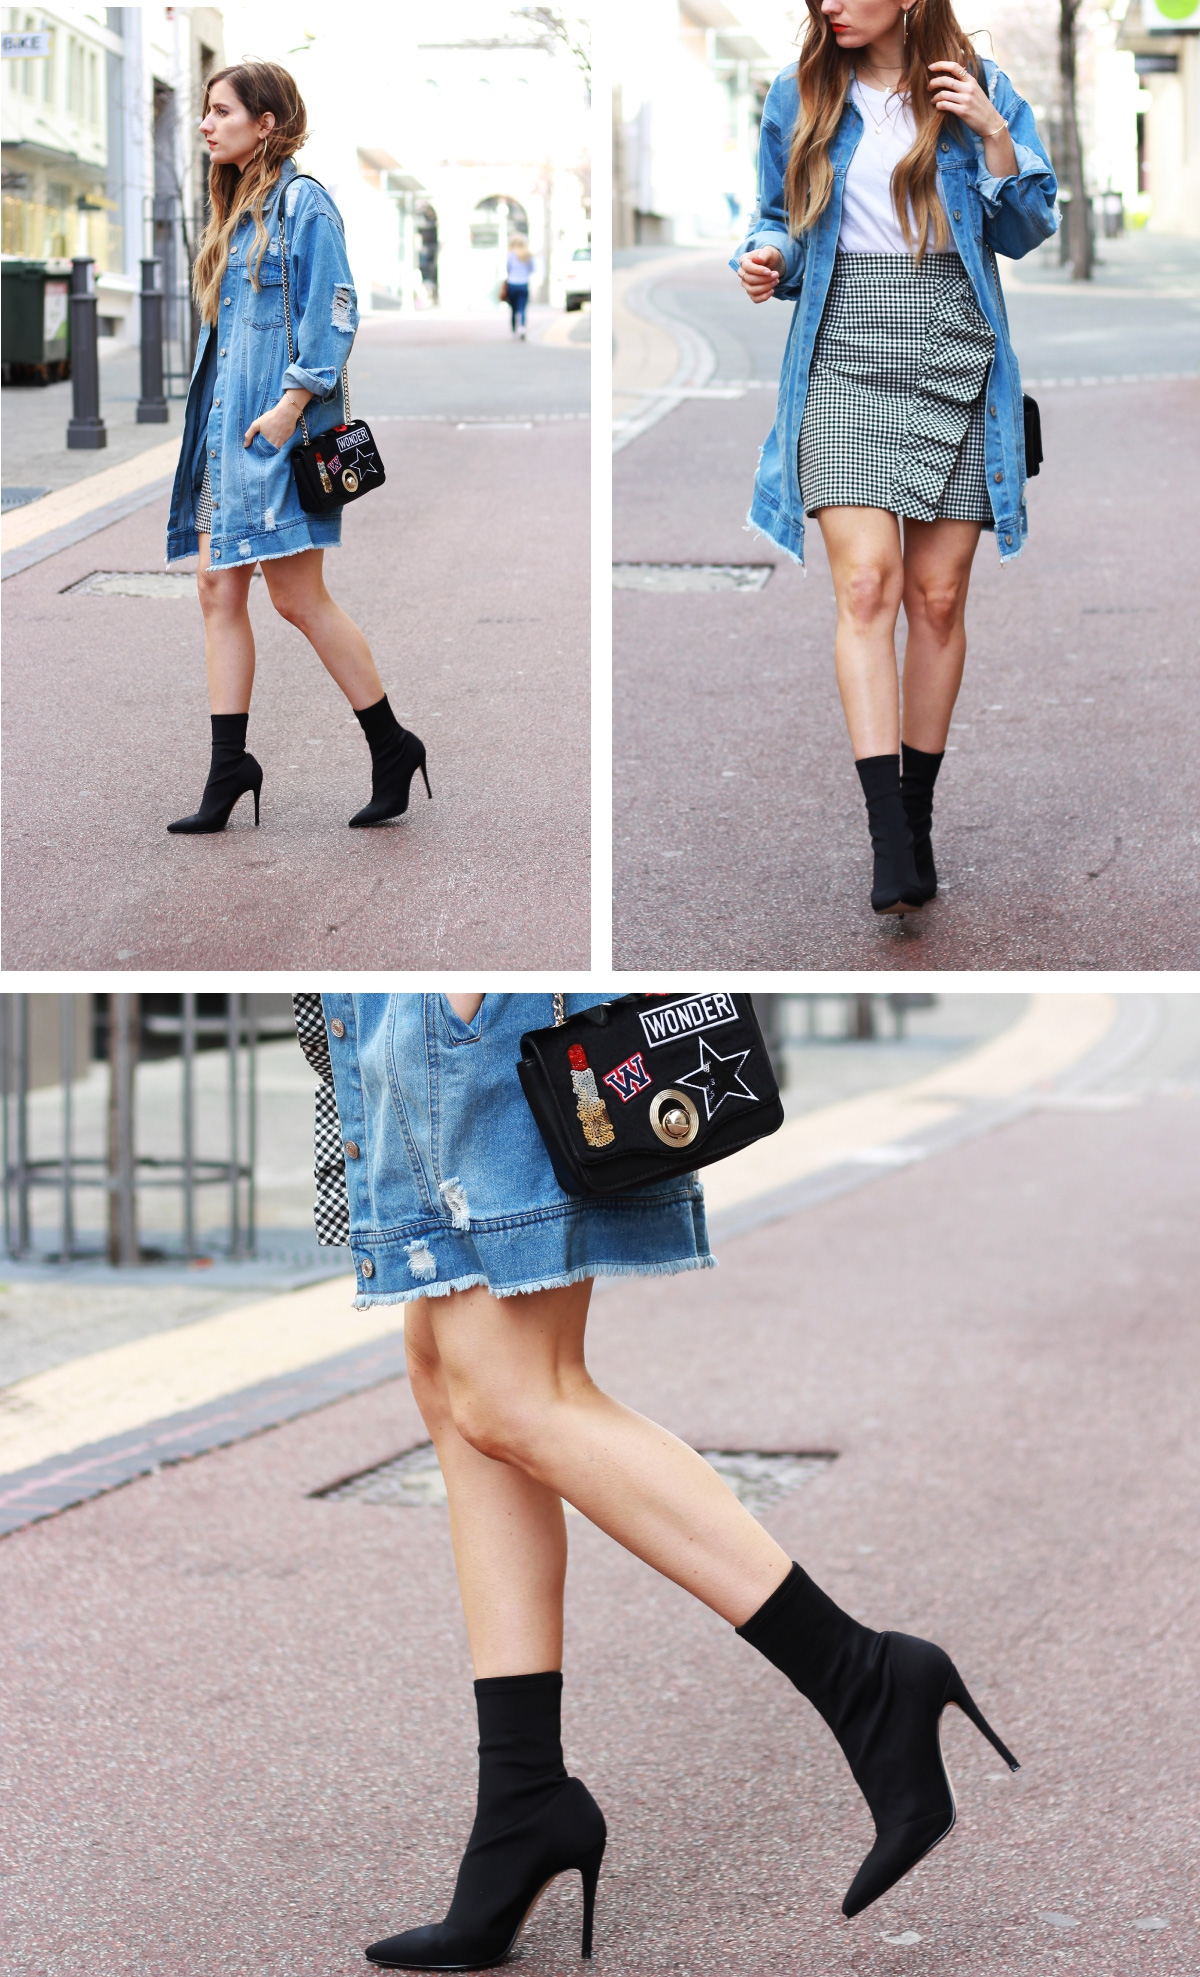 Buy How to boot wear socks with booties picture trends